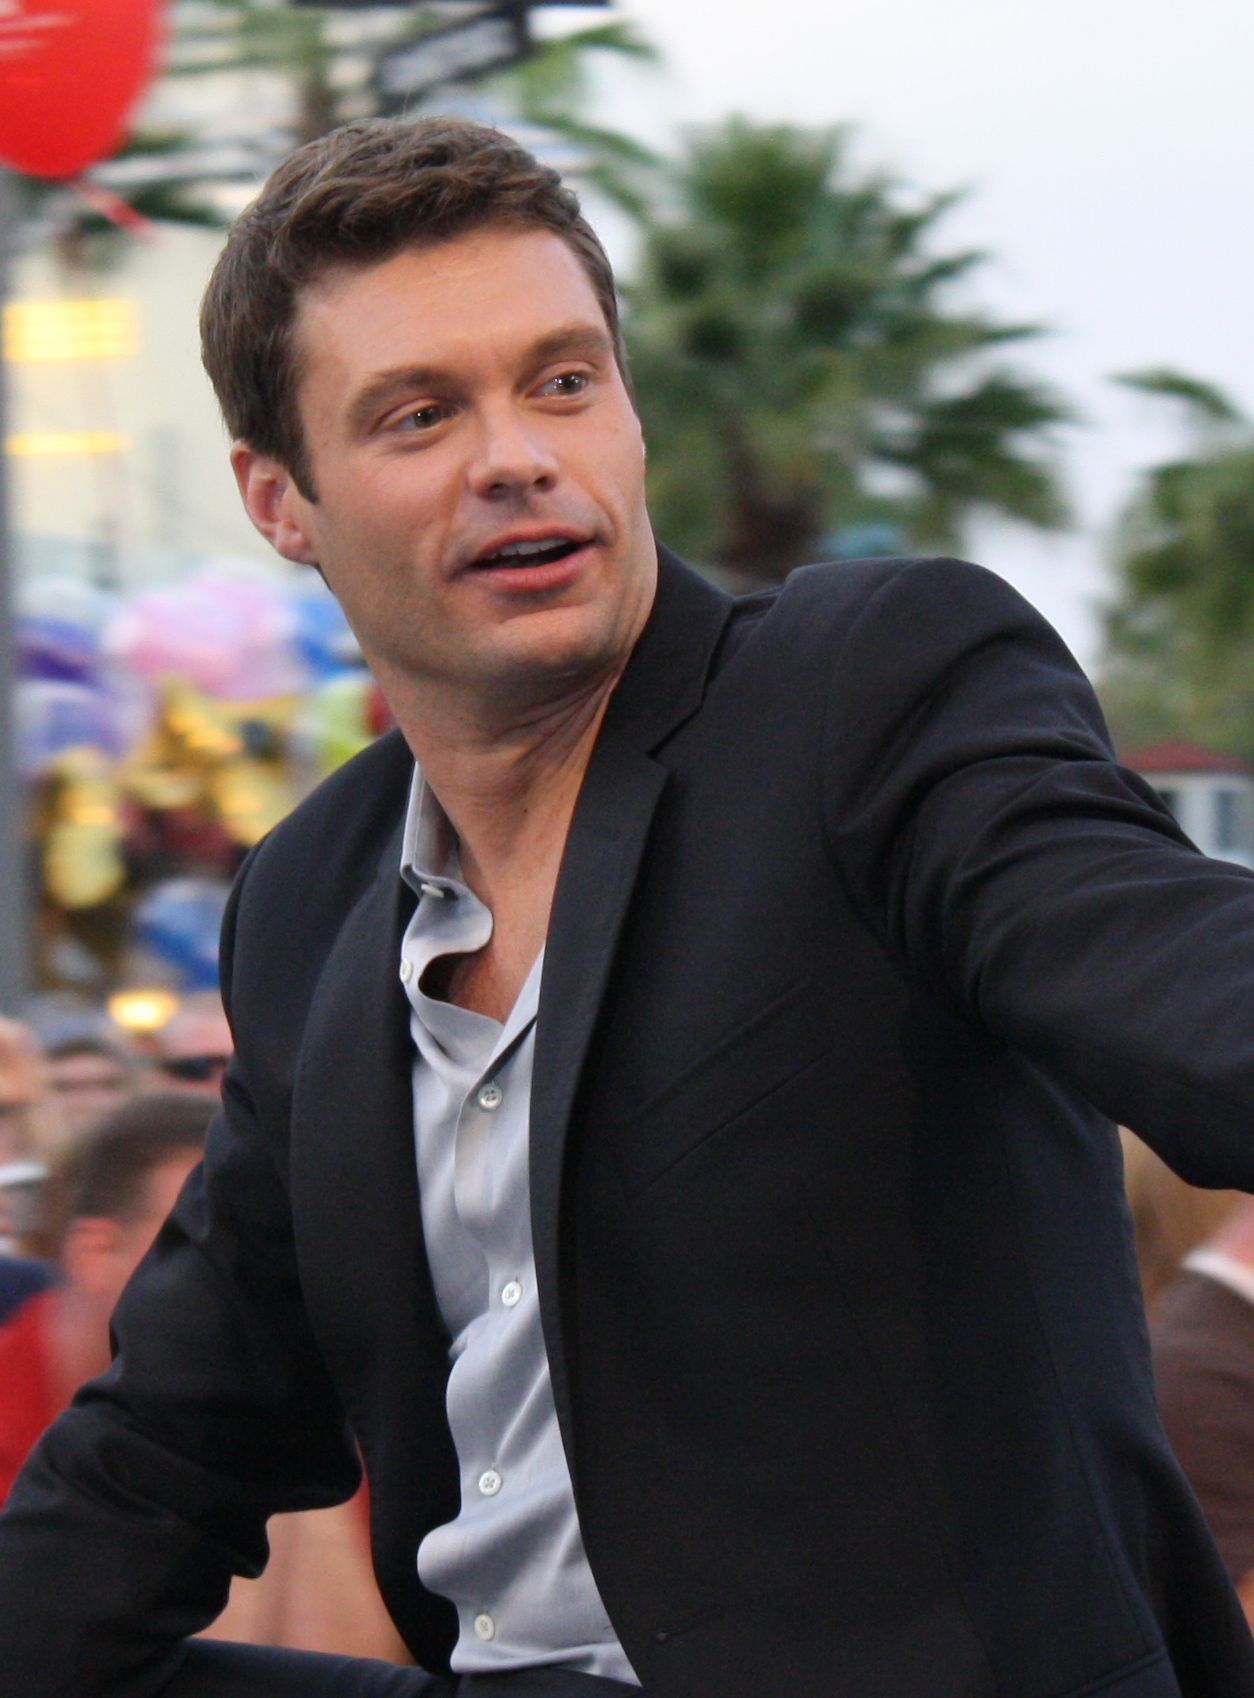 Ryan Seacrest photo #478820